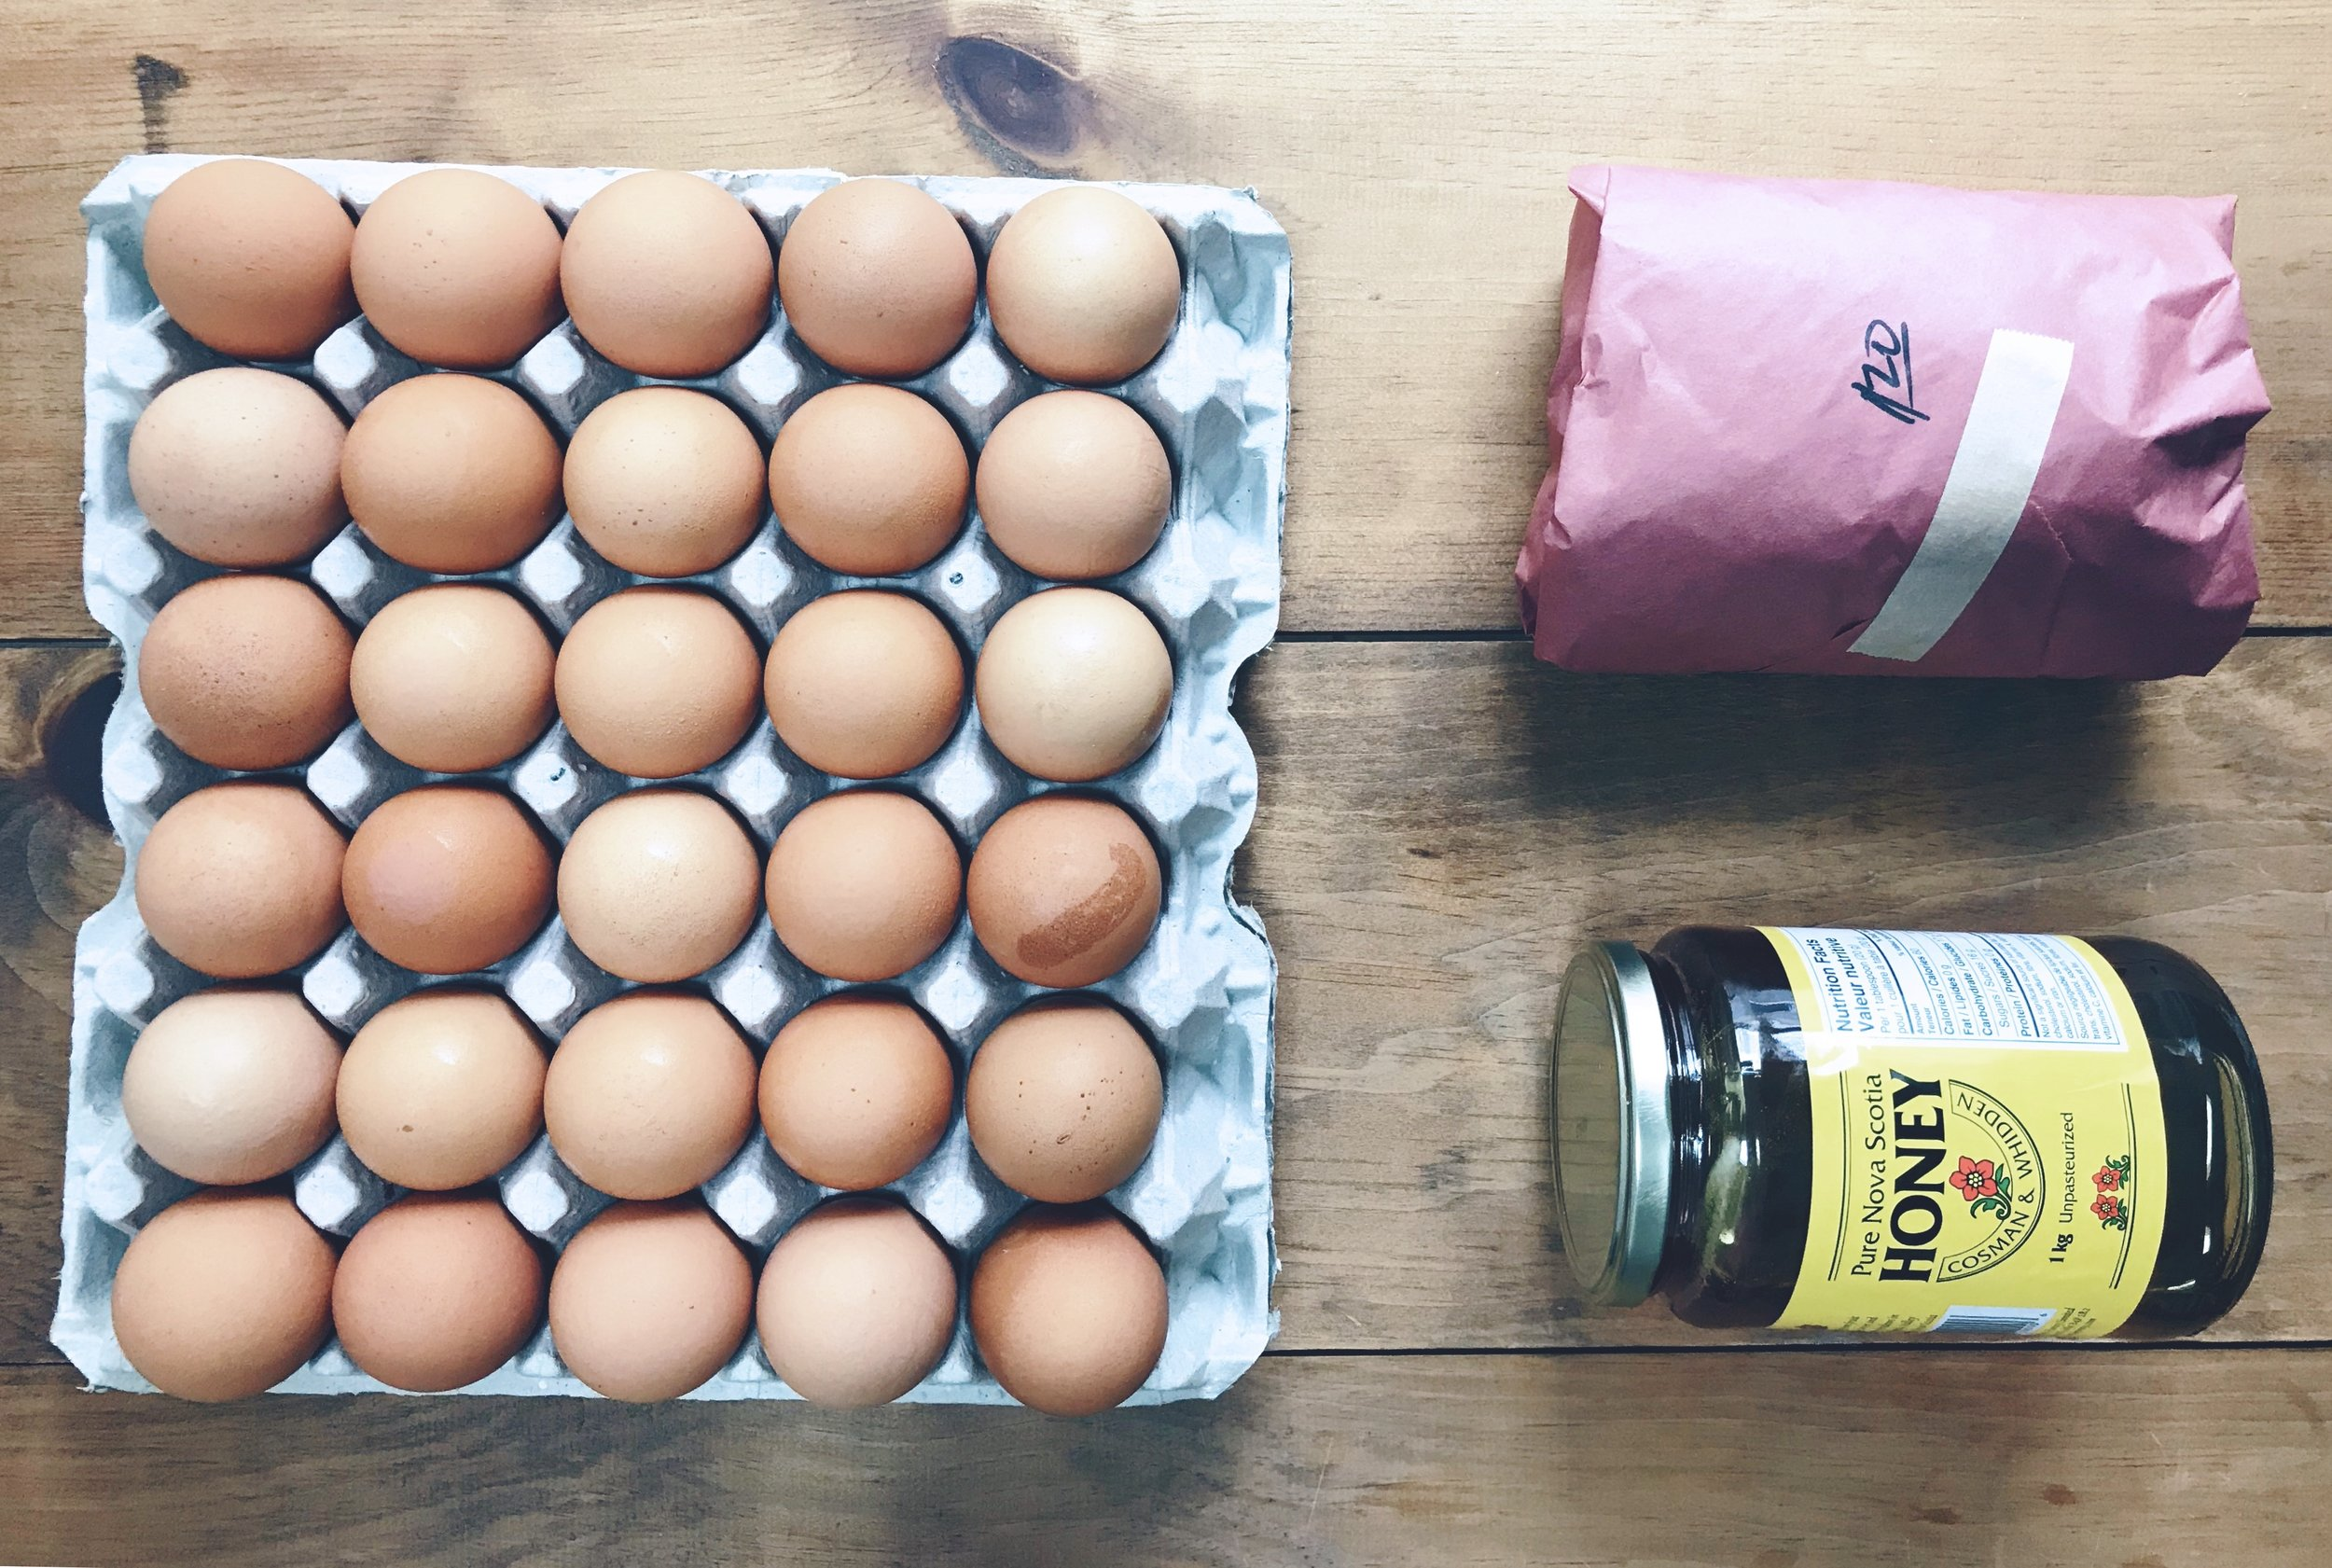 A very small market haul in May. A flat of eggs, jar of honey & sausages.